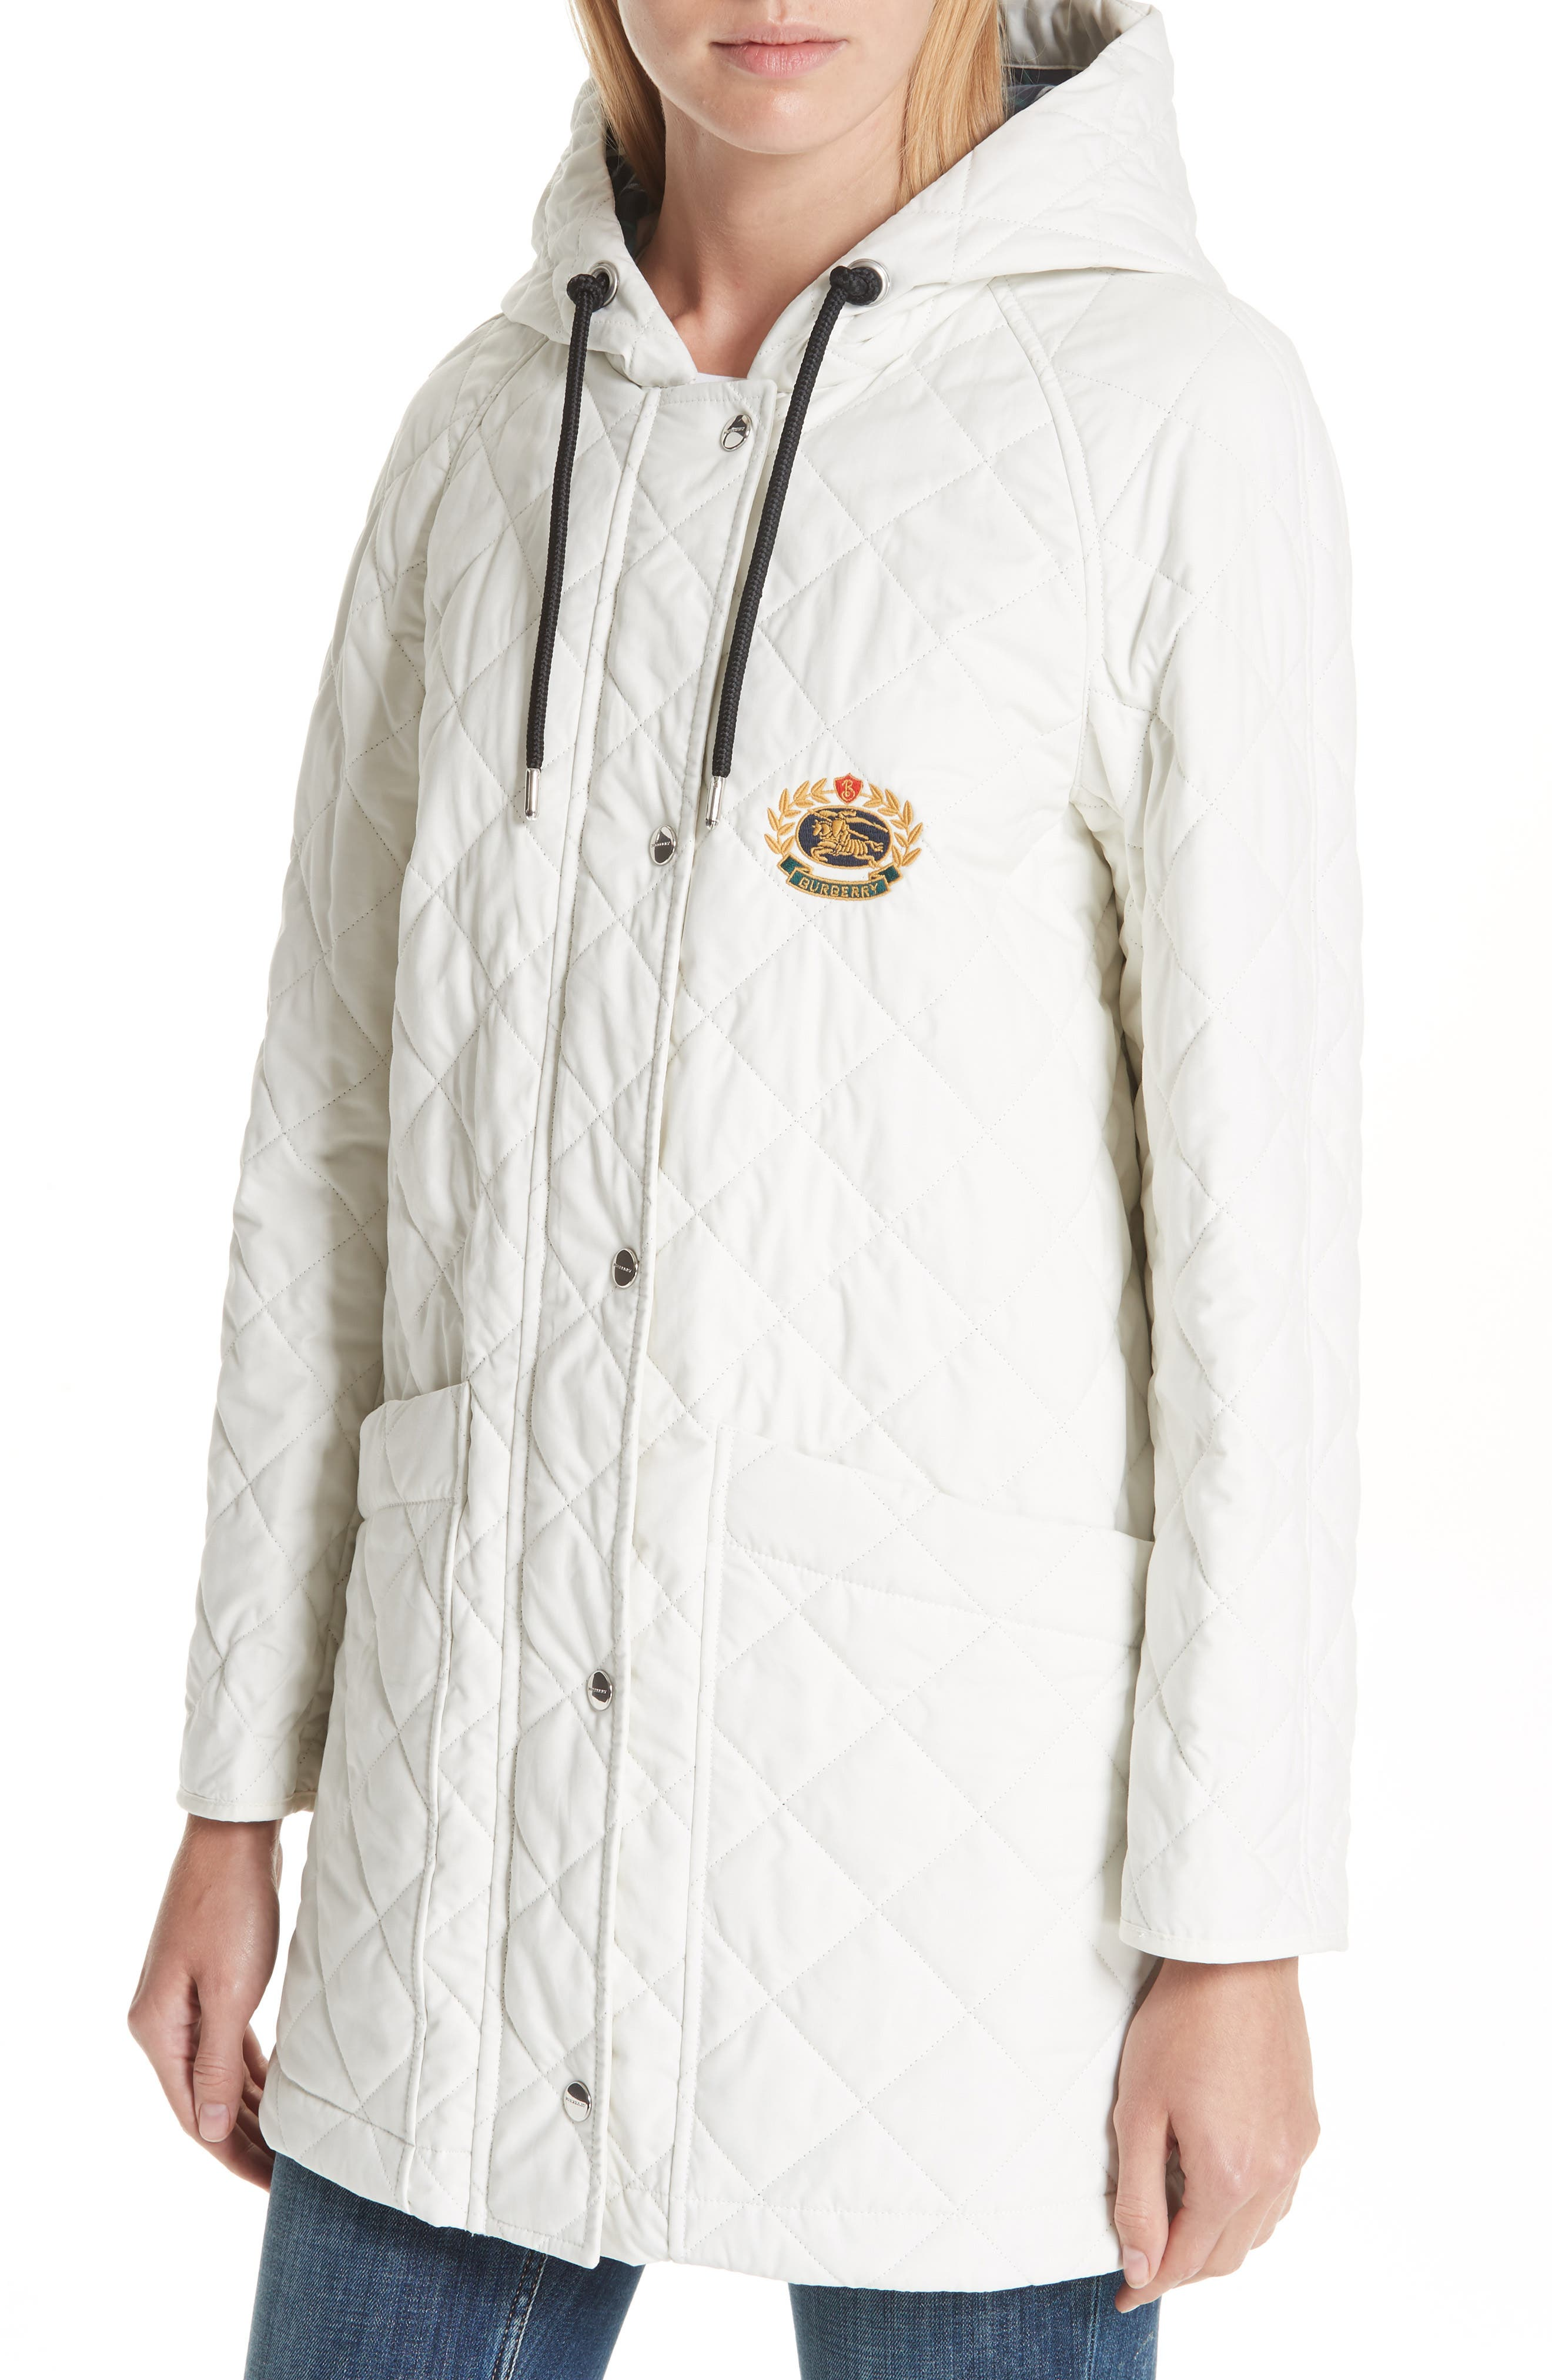 BURBERRY, Roxwell Embroidered Archive Logo Quilted Coat, Alternate thumbnail 4, color, 100